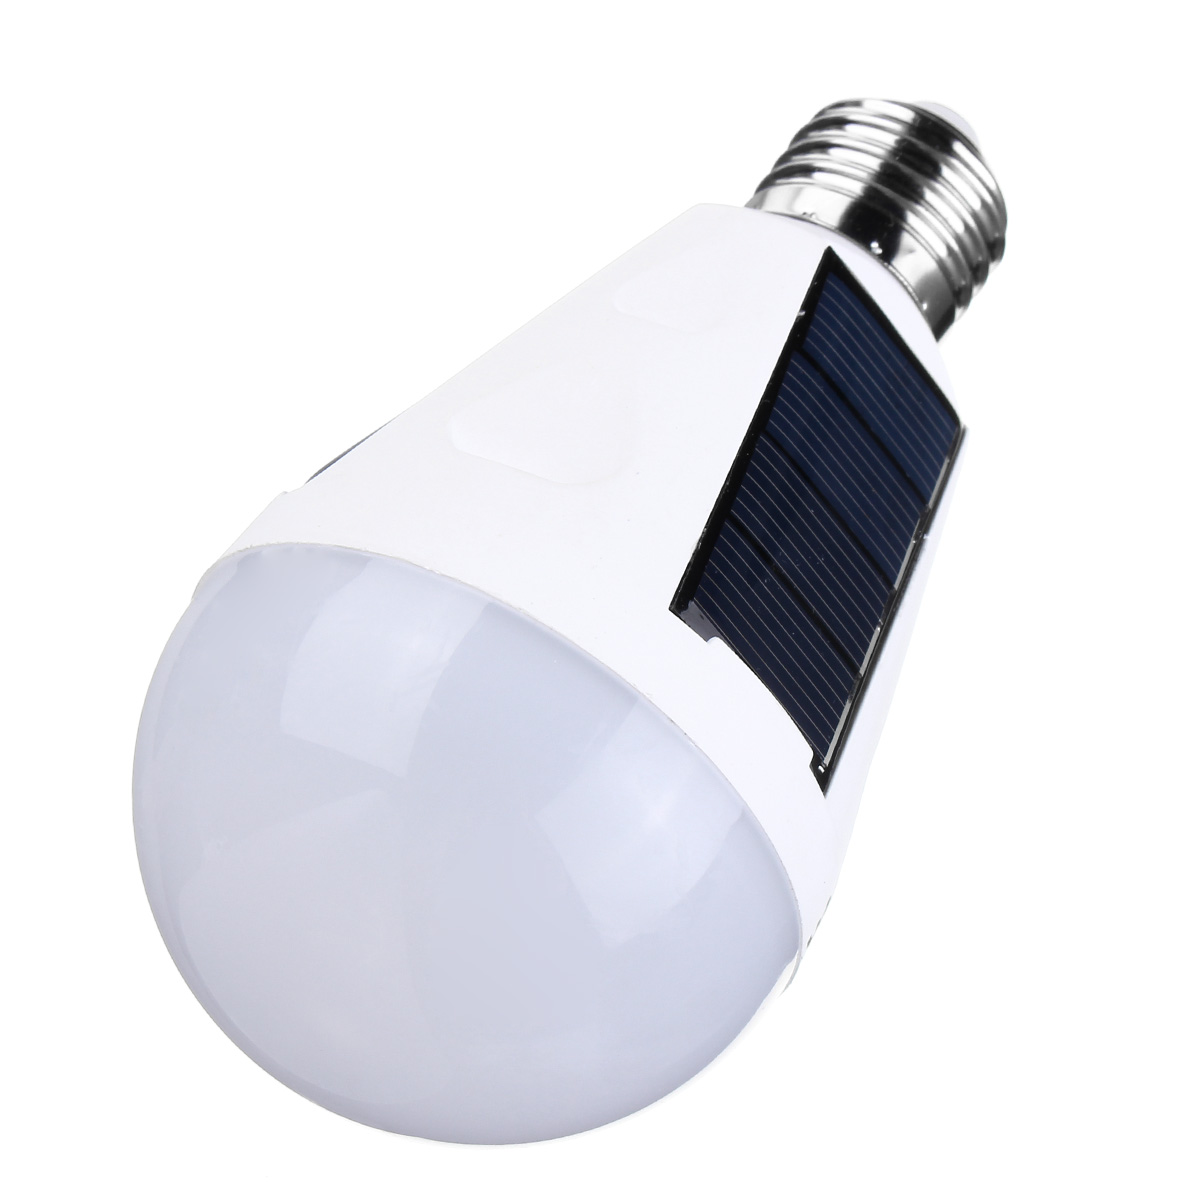 Solar Panel Powered LED Bulb Light Portable Outdoor Garden Camping Tent Lamp 7W